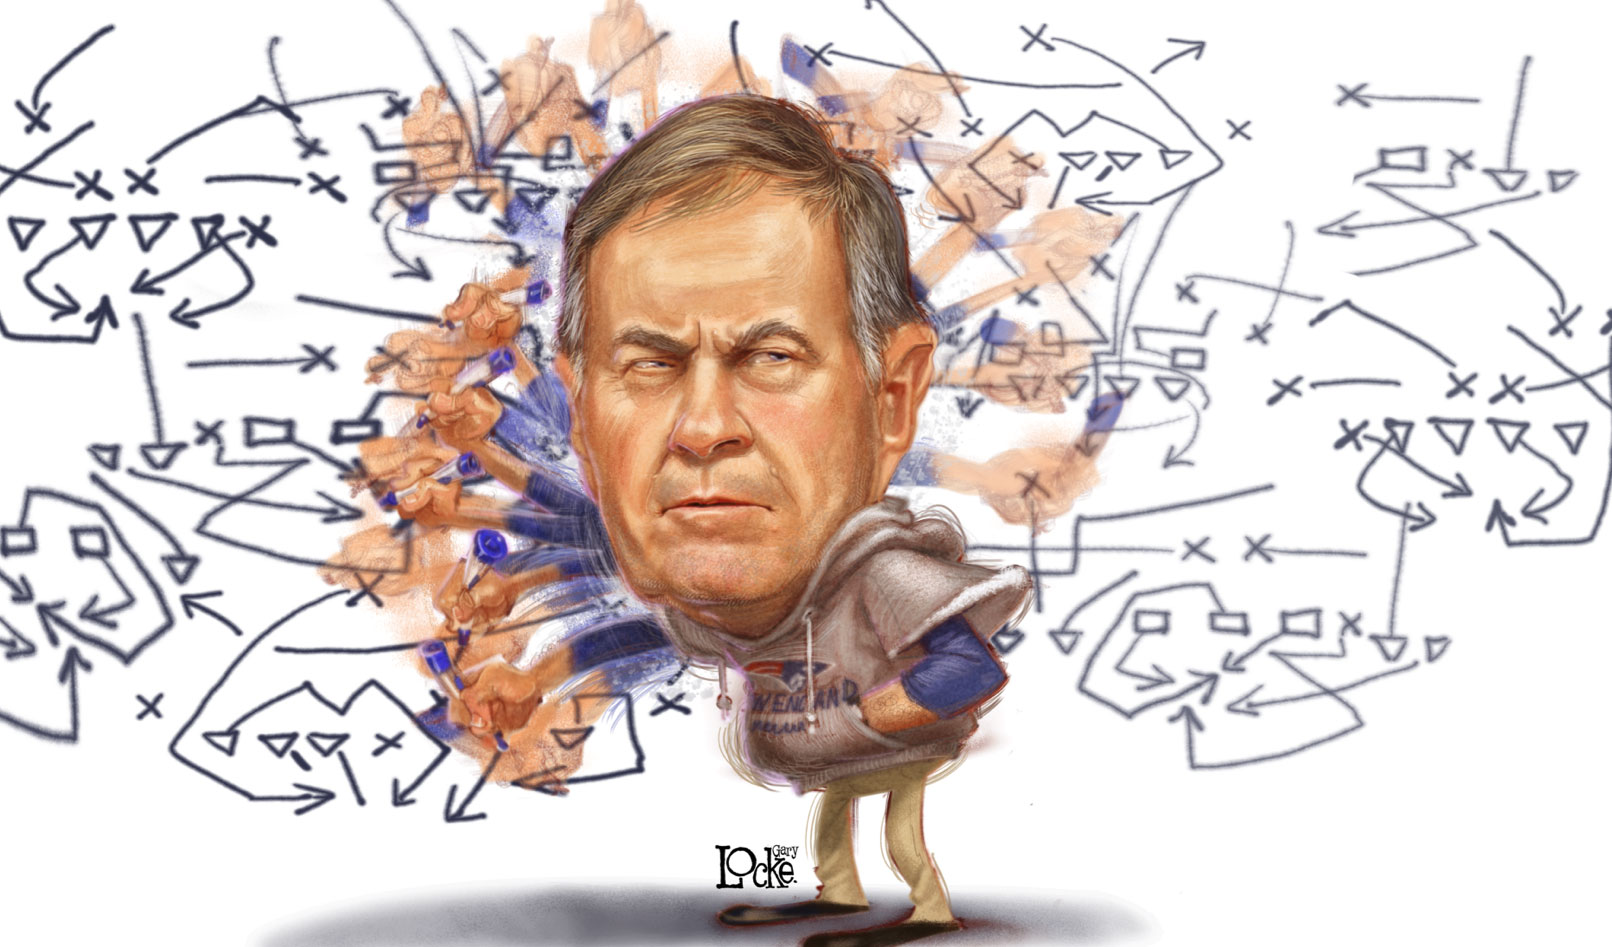 Gary Locke humorous Illustration of Bill Belichick designing a play on a white board.